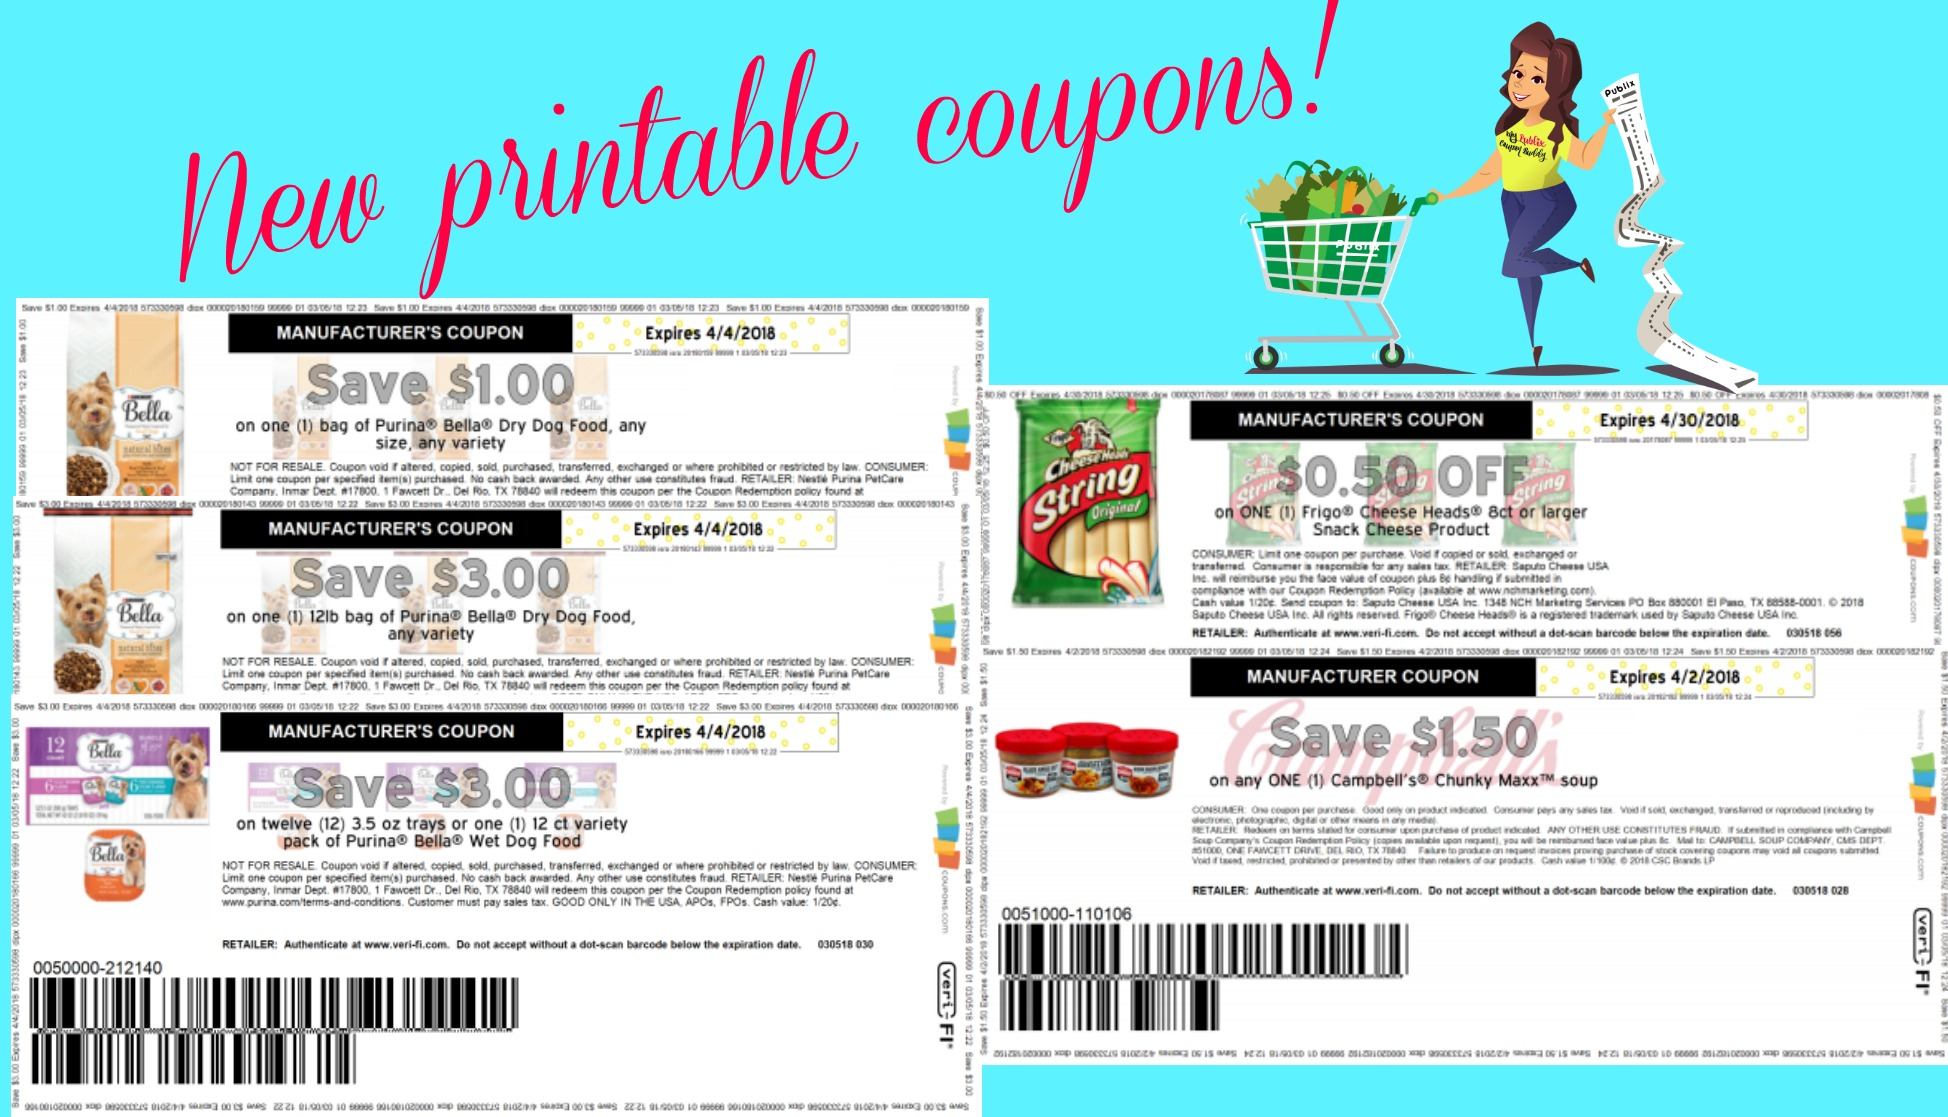 New printable coupons for Bella Dog Food Frigo Cheese and Campbells